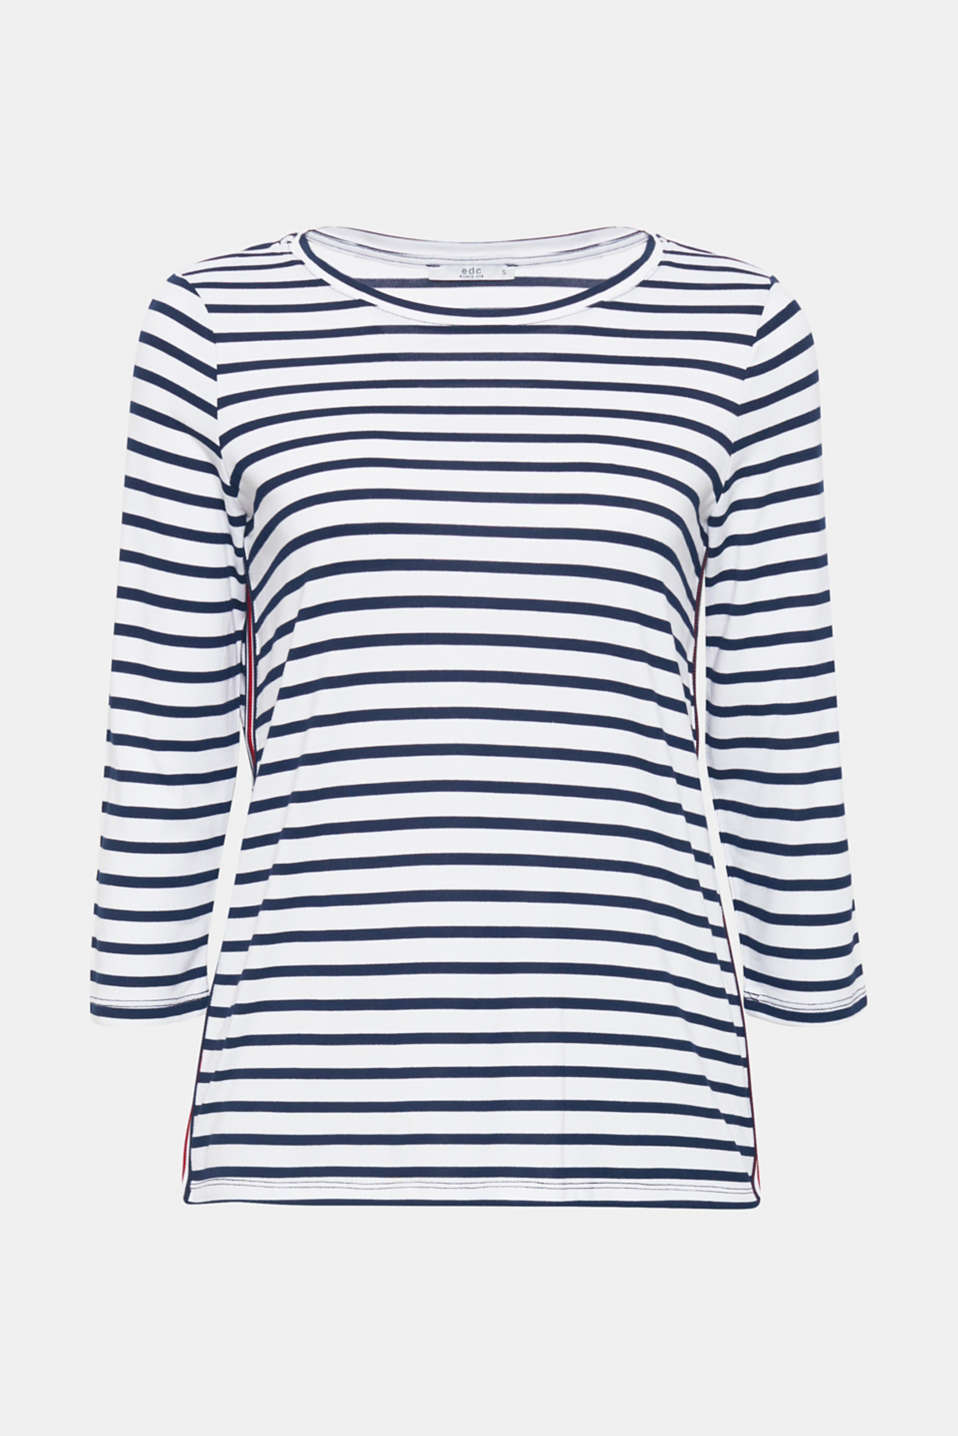 We love stripes! High-contrast tuxedo stripes on the sides give this top with three-quarter length sleeves its sporty spirit.